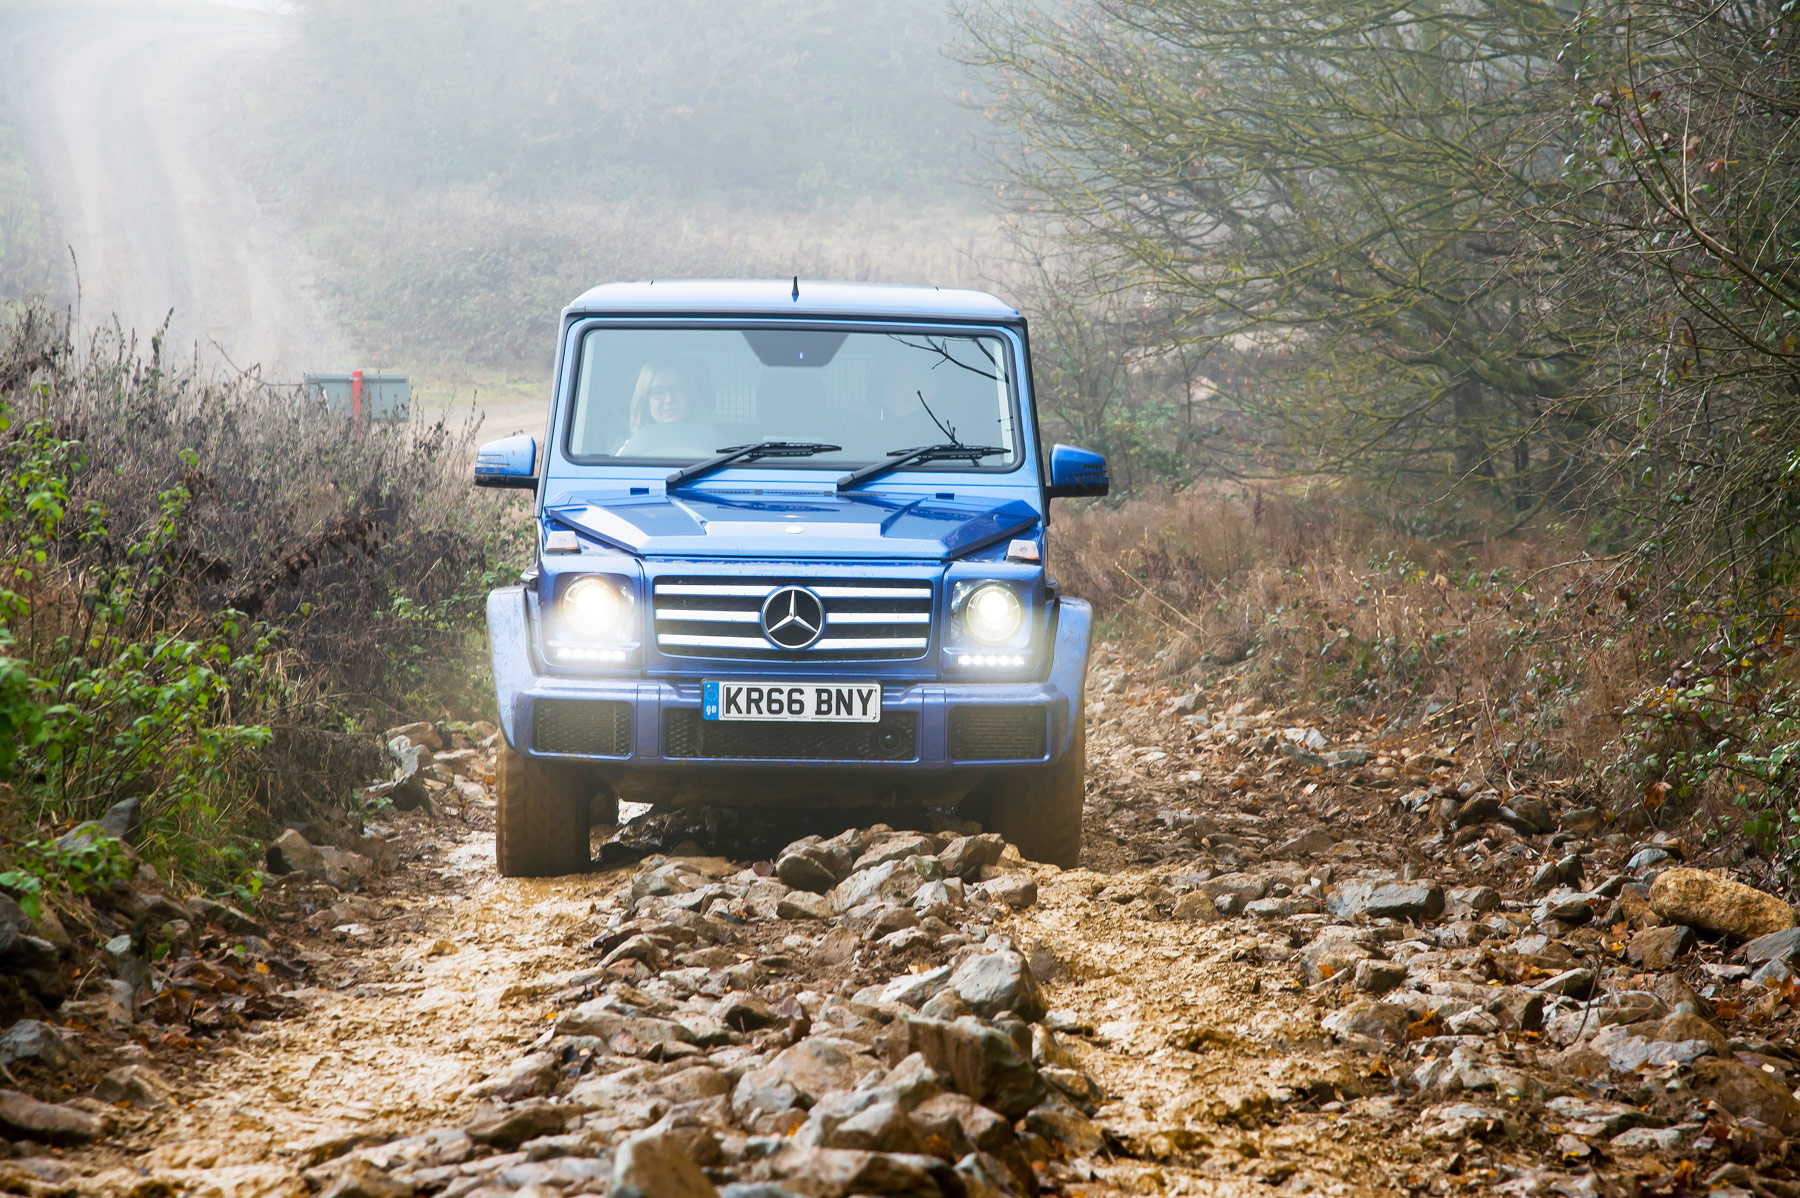 Mercedes-Benz SUV G Class Off-Road Test At Millbrook Proving Ground 4